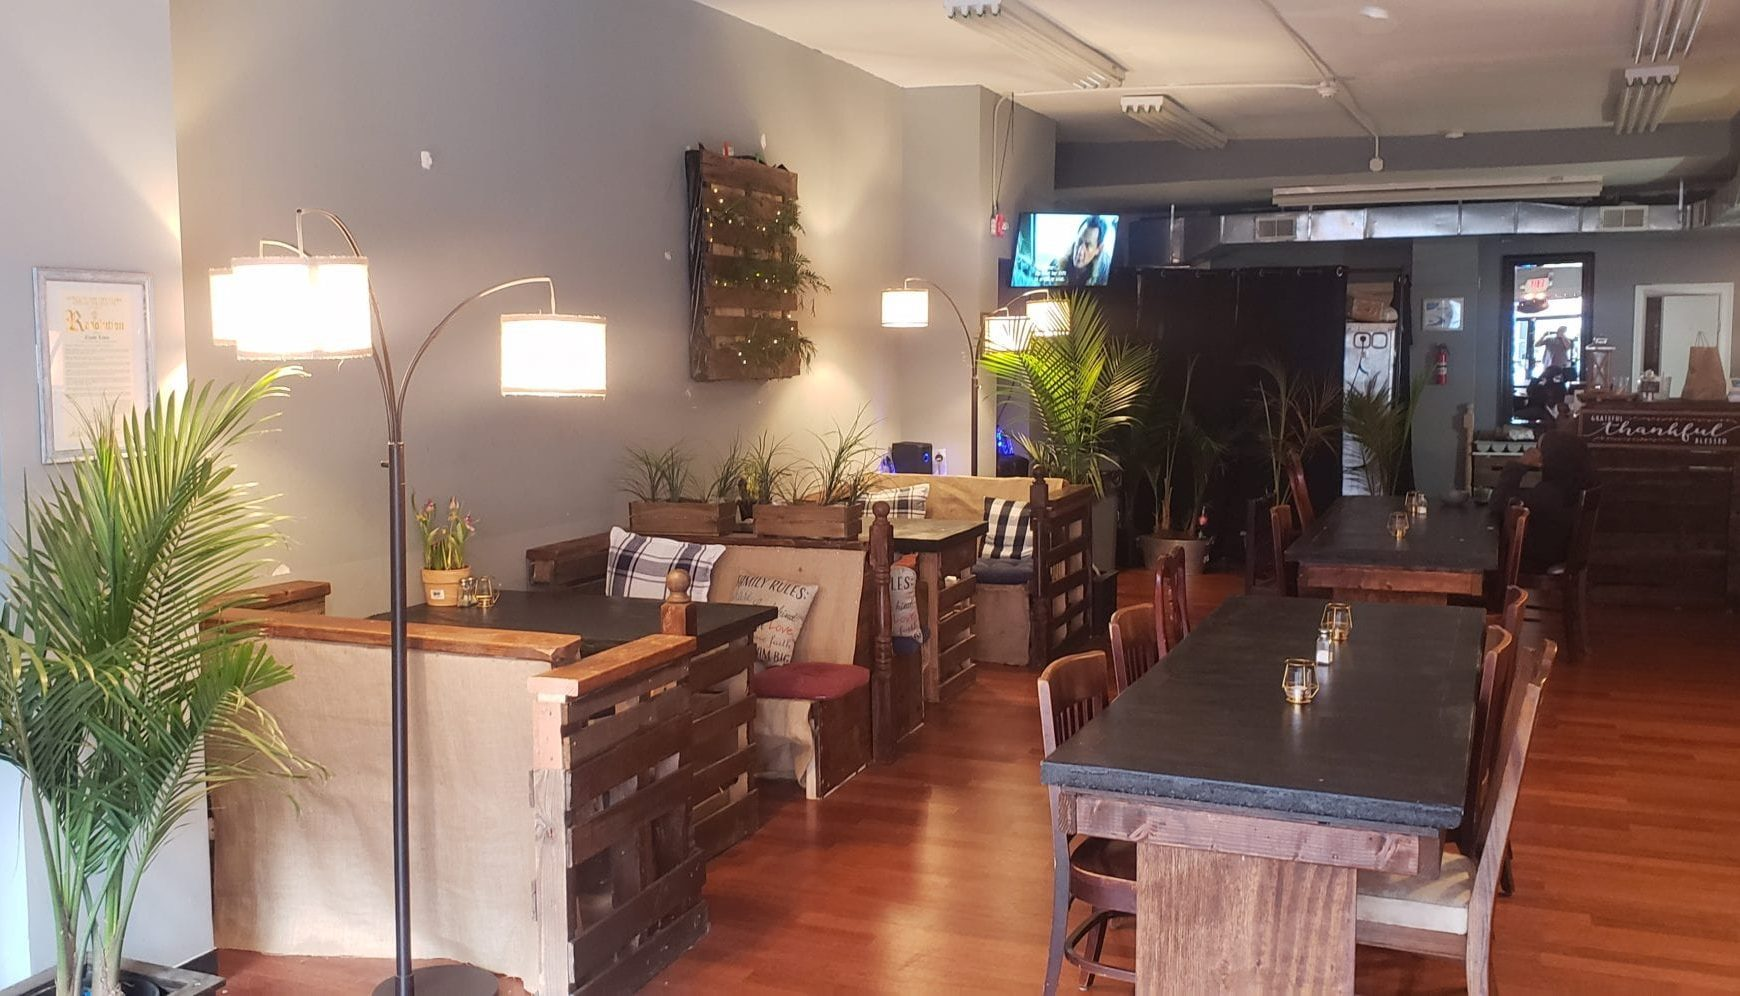 Decoration Sous Sol 2015 freetown road project brings west indian cuisine to jersey city